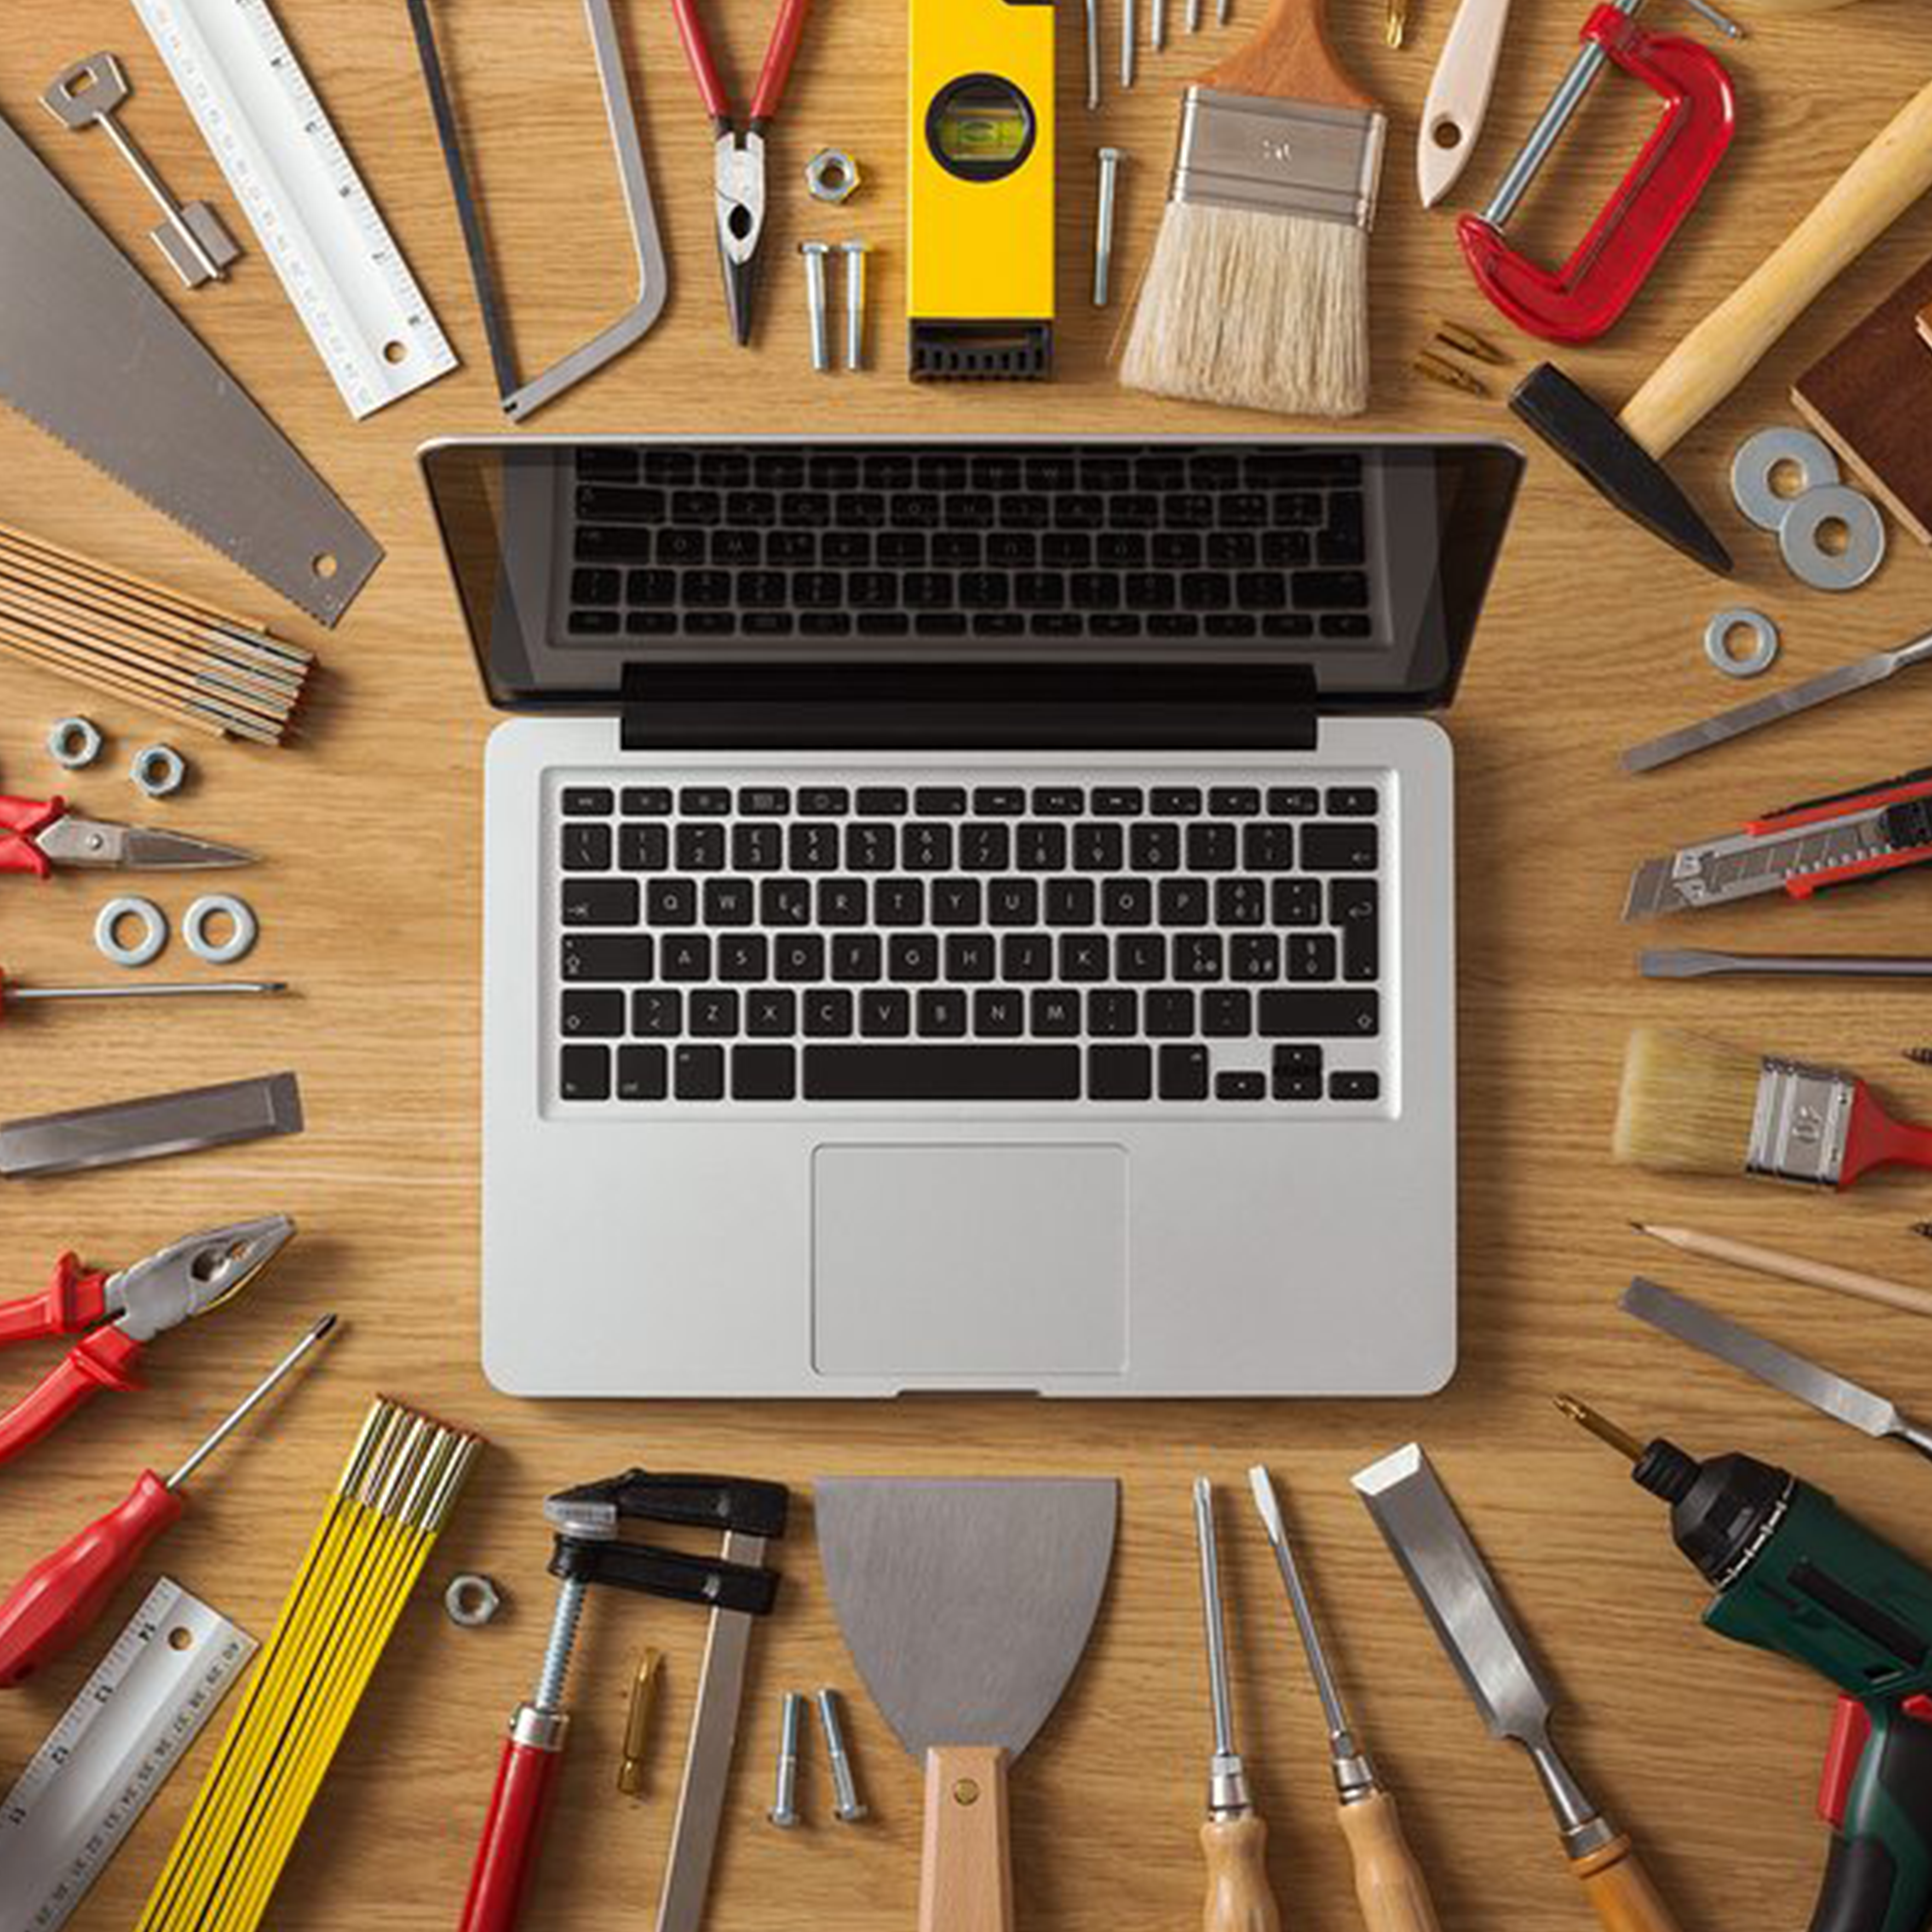 Tools I Use – an Overview